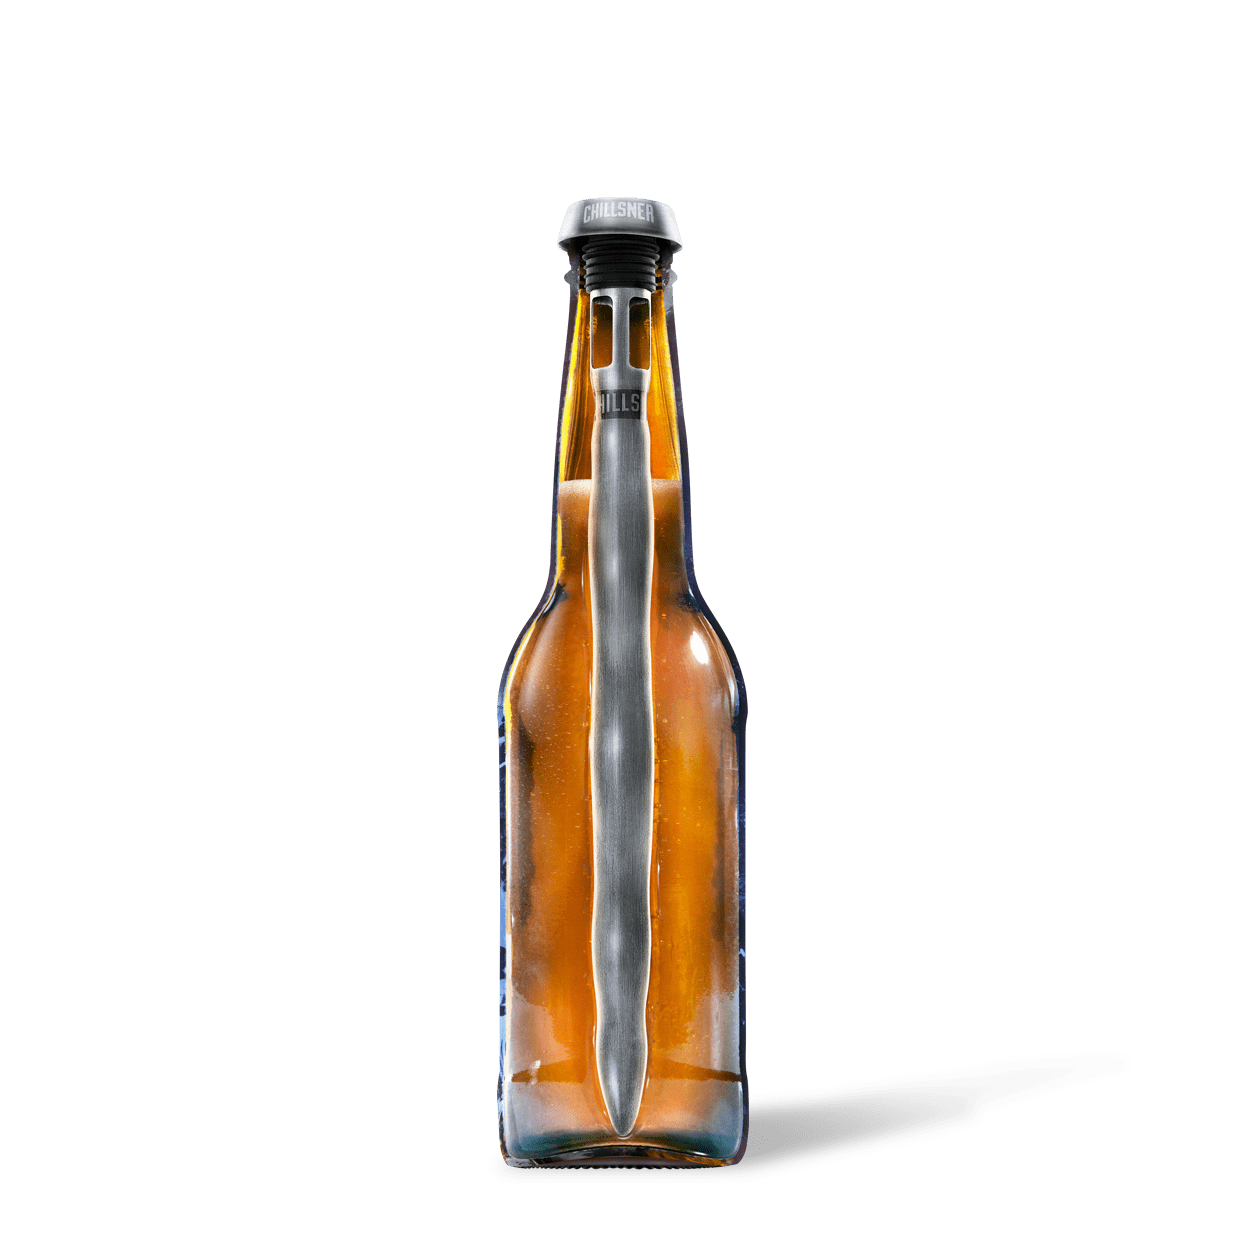 Chillsner beer chiller in beer bottle.